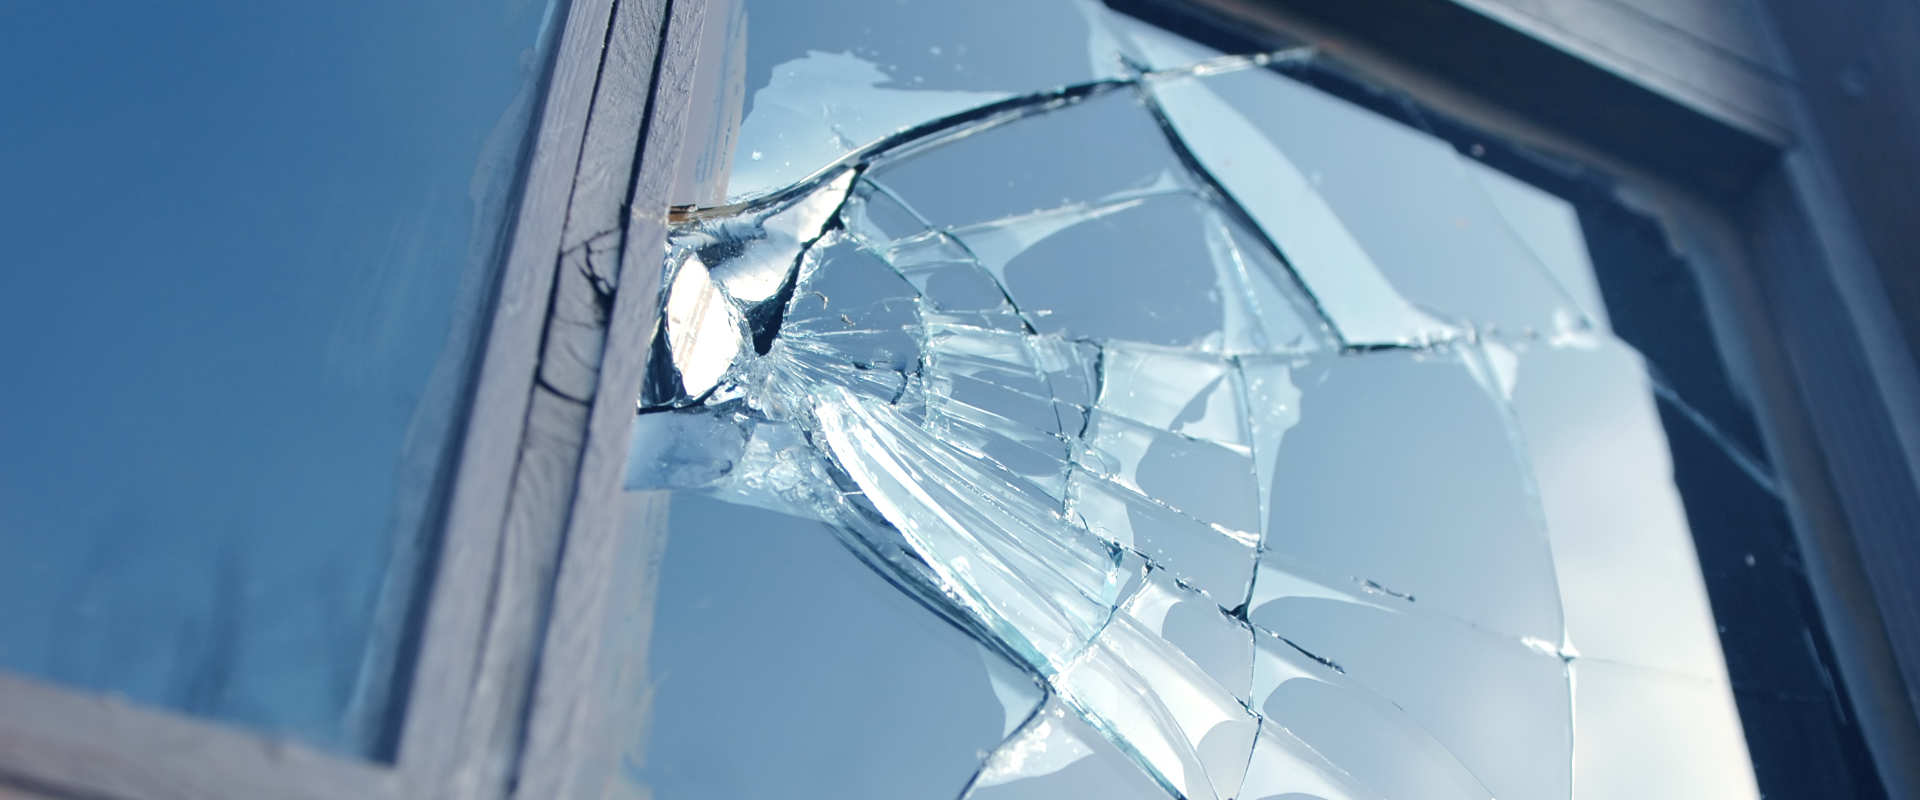 Damage Due to Defective Window Charleston SC